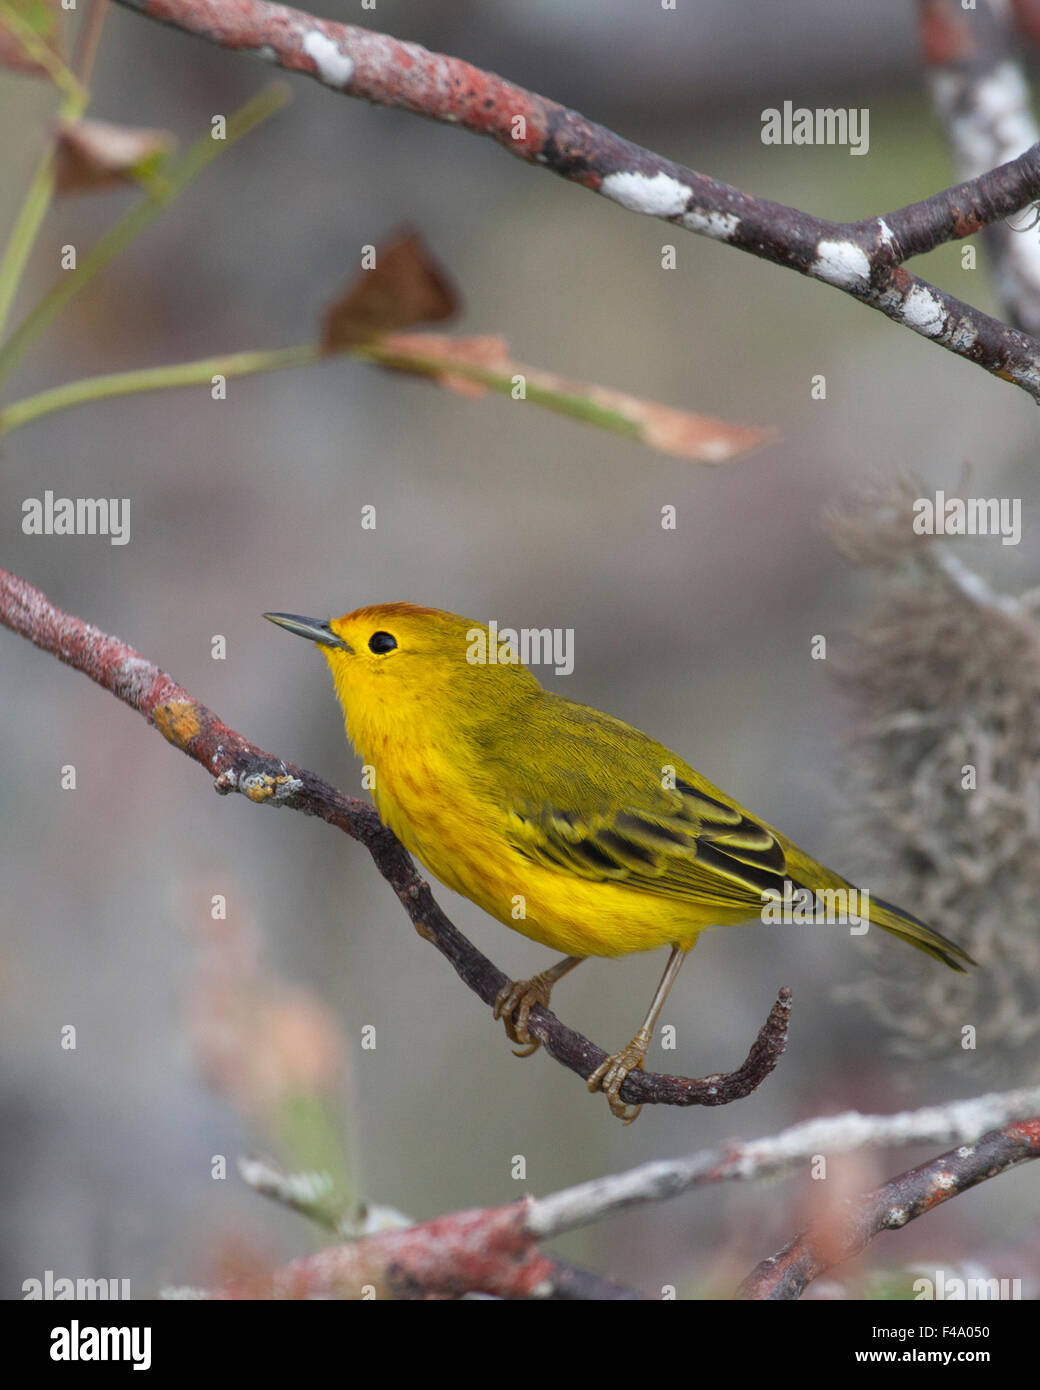 Yellow Warbler male (Dendroica petechia) - Stock Image